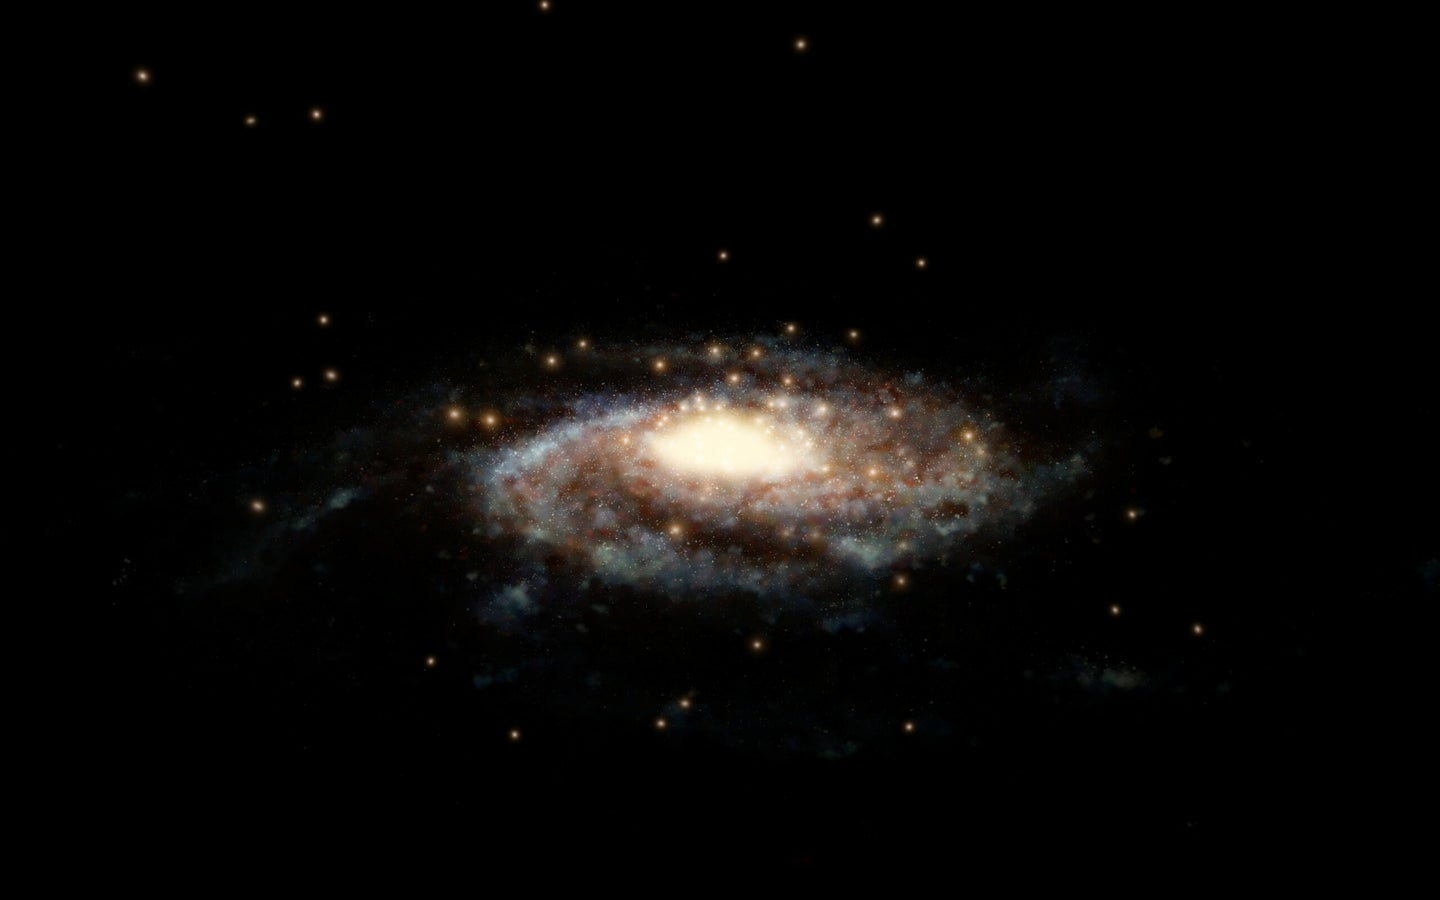 an illustration of the milky way galaxy in space